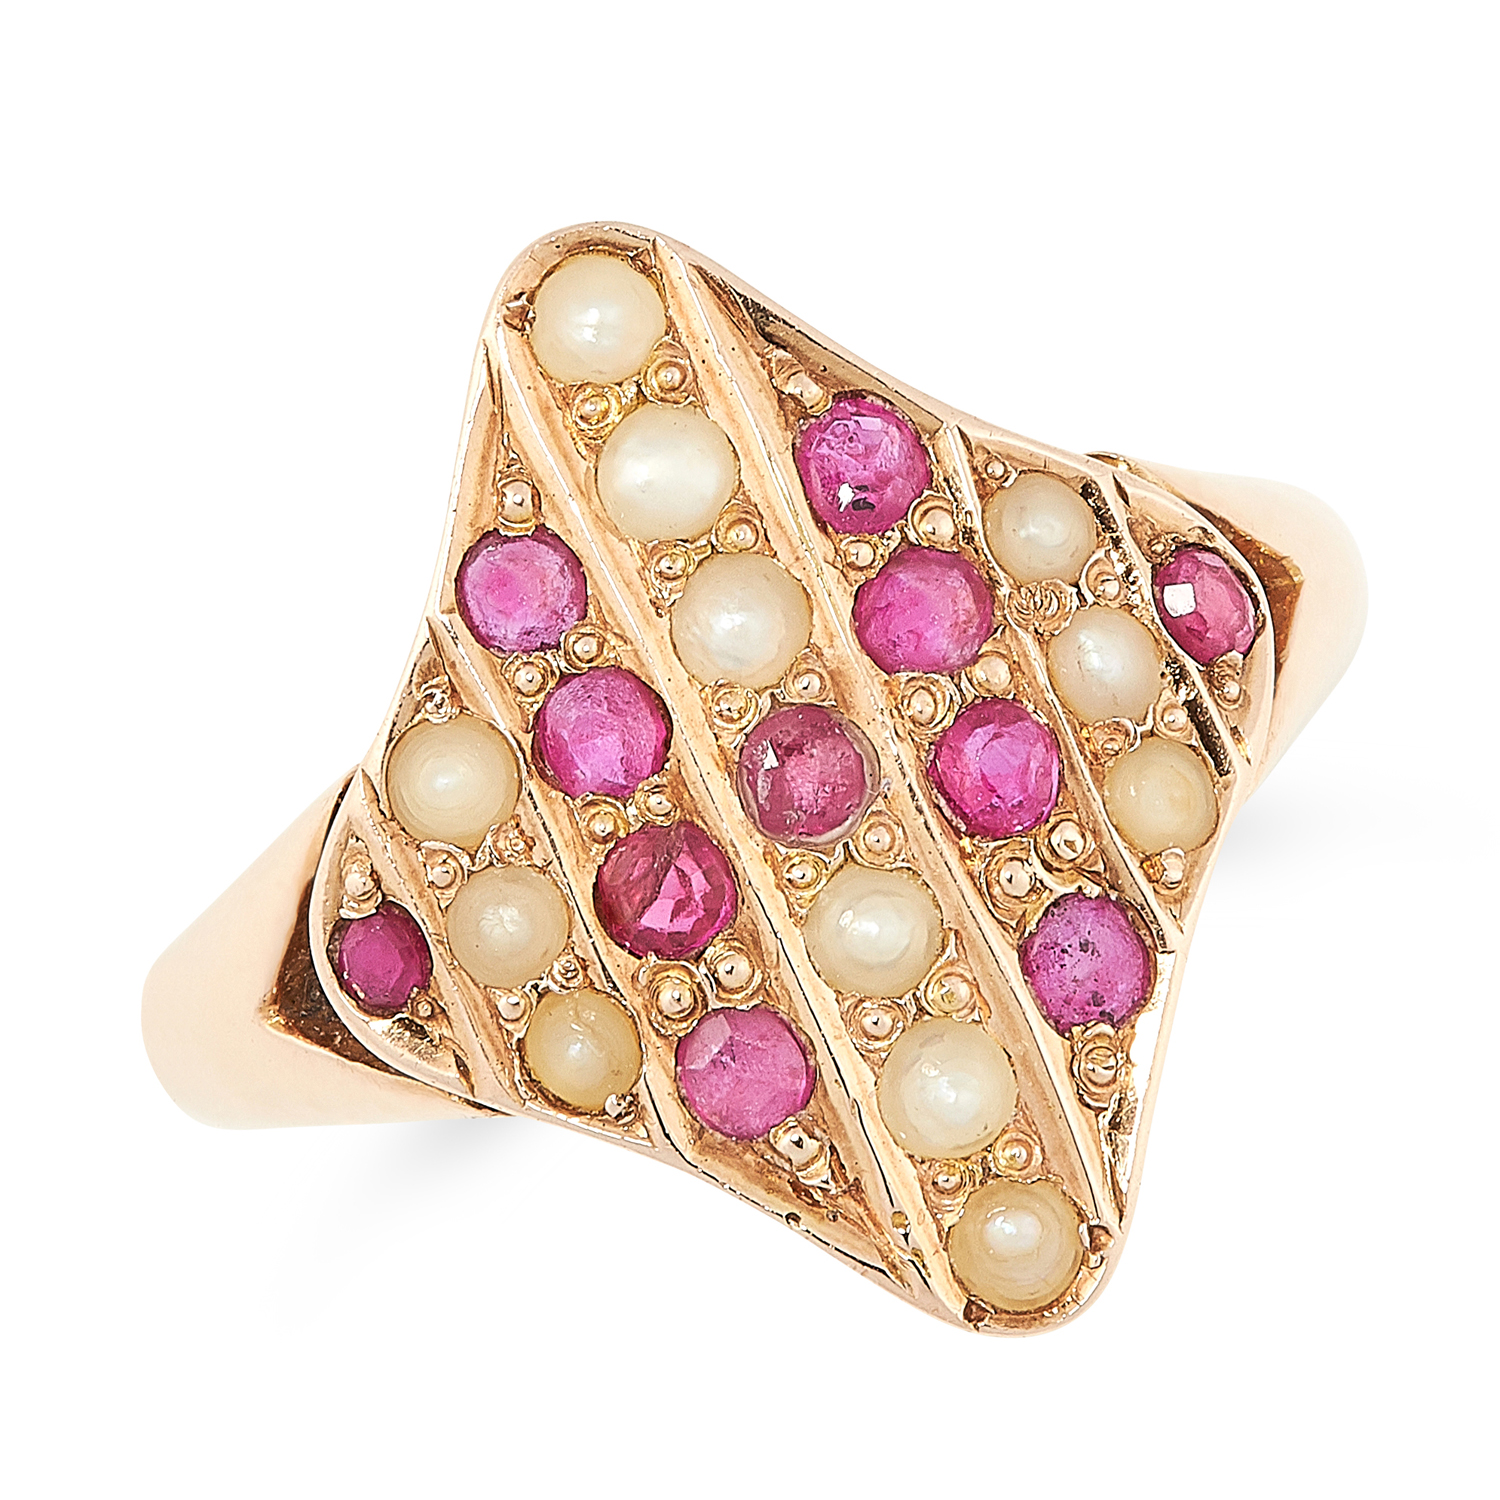 A RUBY AND PEARL DRESS RING the navette face is set with round cut rubies and pearls, tests as